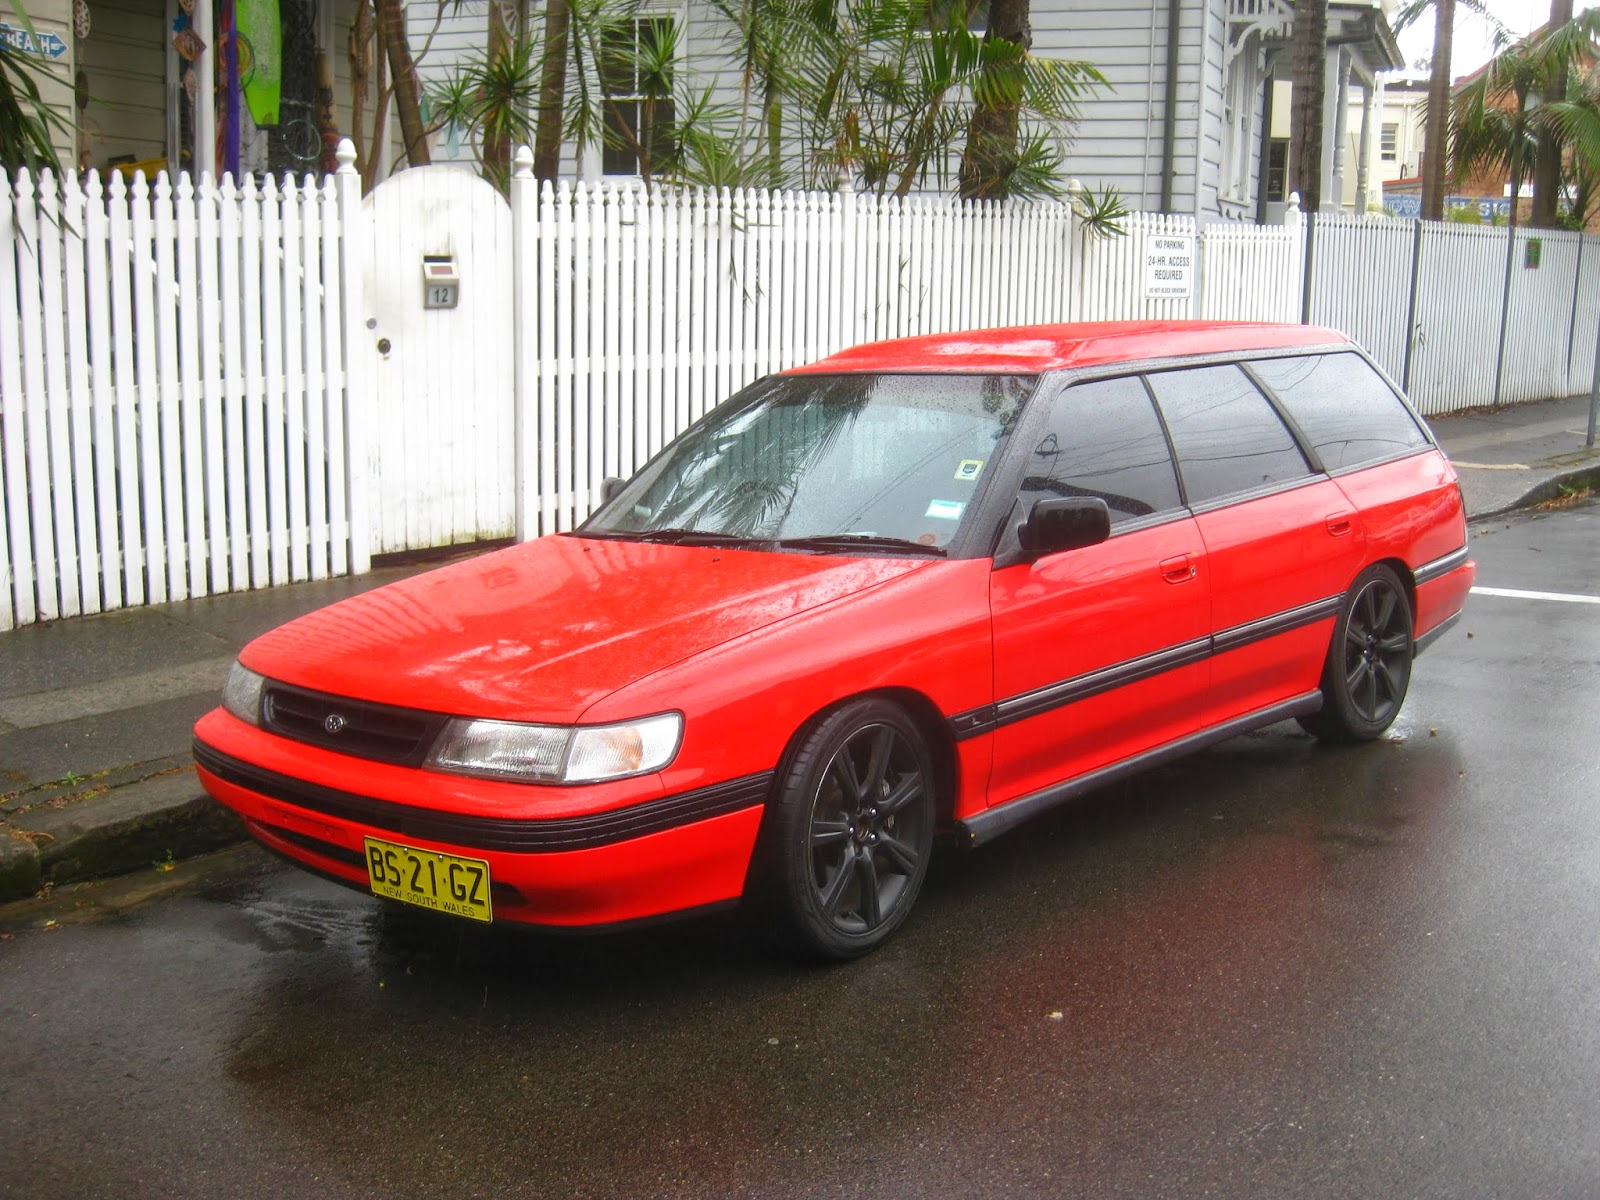 Aussie Old Parked Cars 1992 Subaru Liberty Lx High Roof Wagon